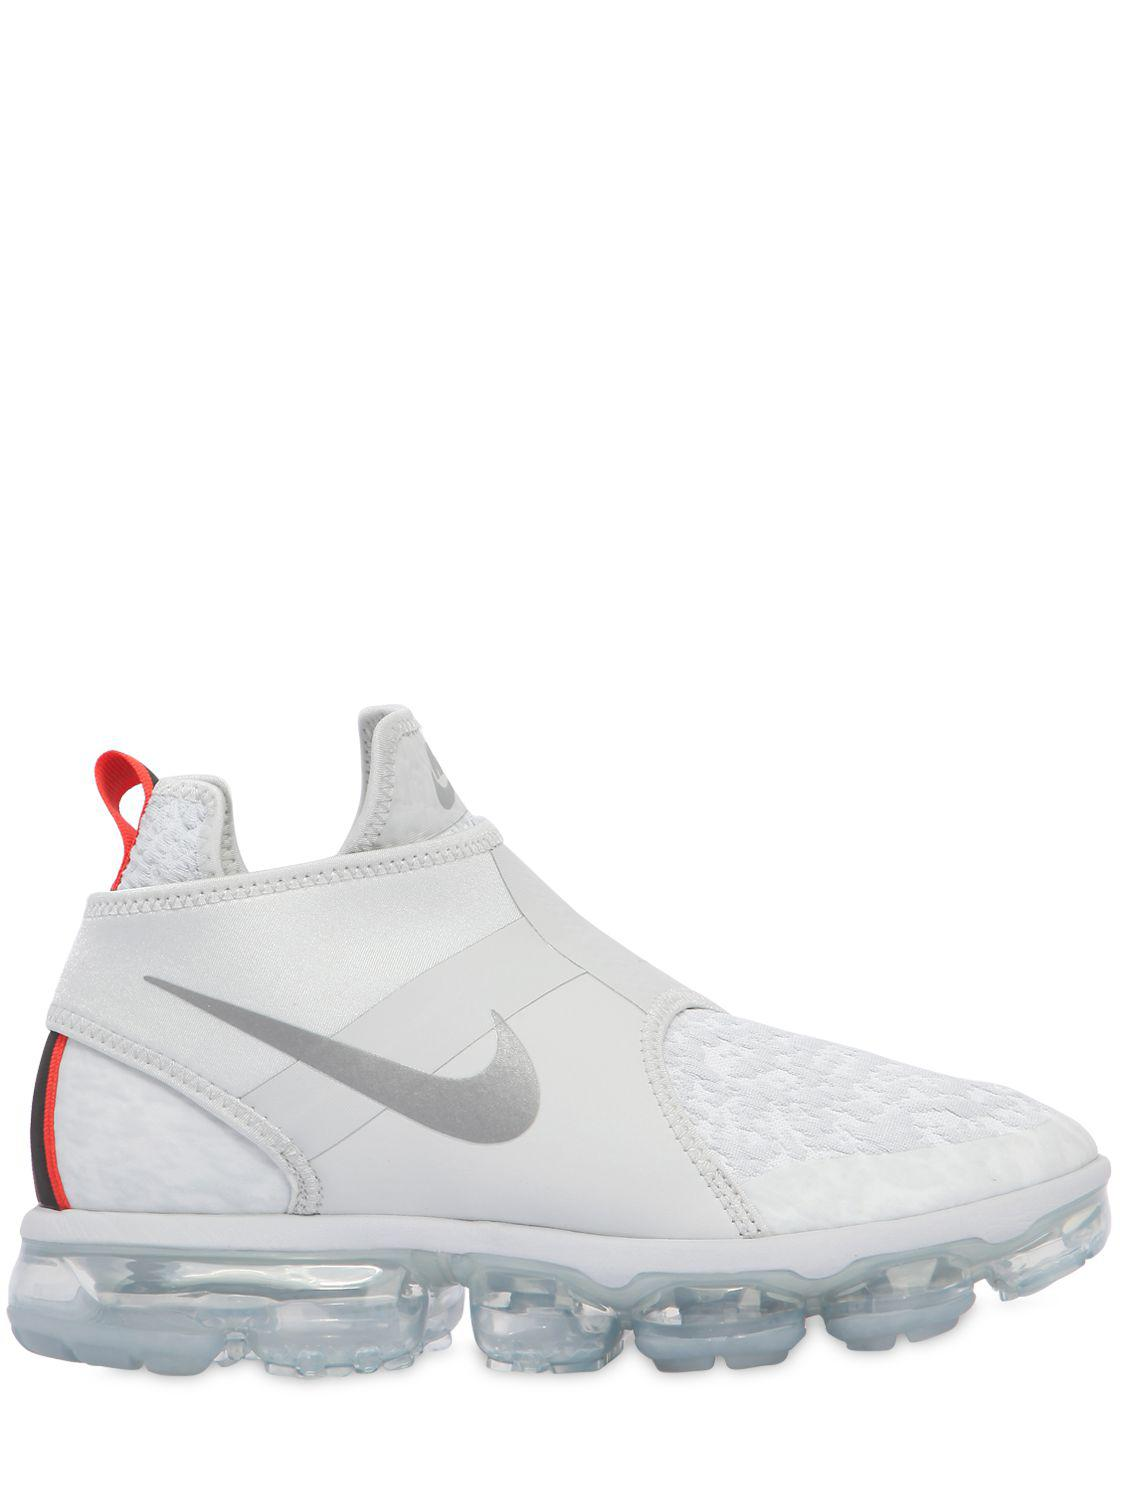 huge selection of c8b7b 14c92 Cheap Nike VaporMax Evolves the Look and Feel of Air Dr. Muh